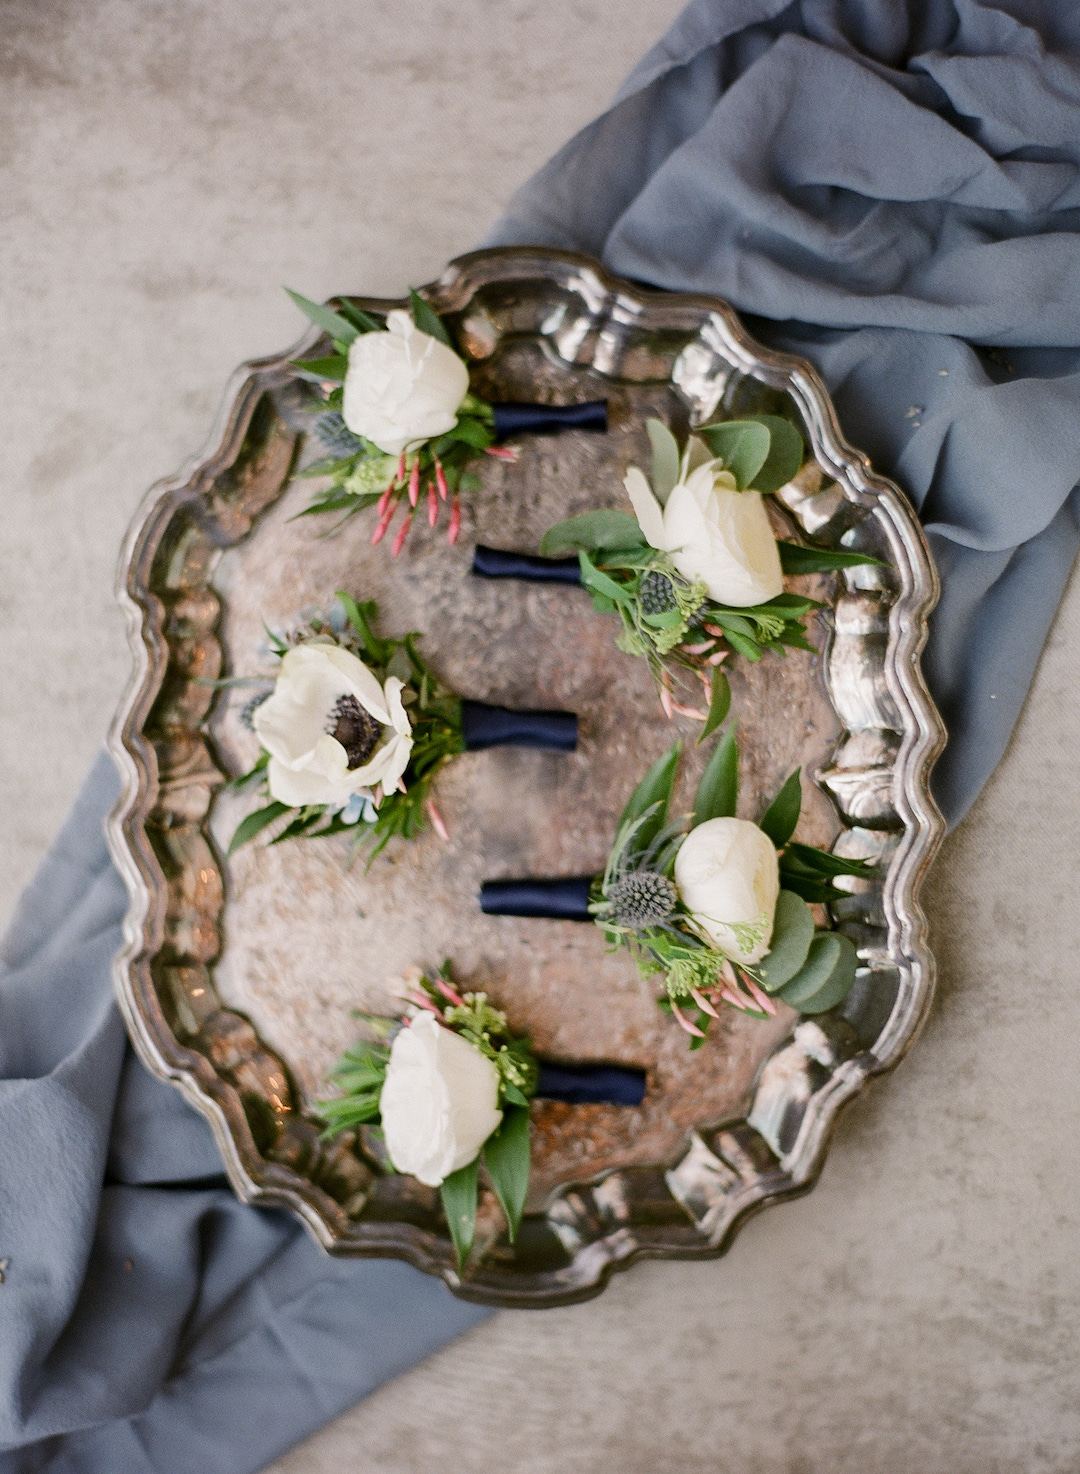 Wedding boutonnieres for Pittsburgh wedding at Hotel Monaco planned by Exhale Events. Find more modern wedding ideas at exhale-events.com!